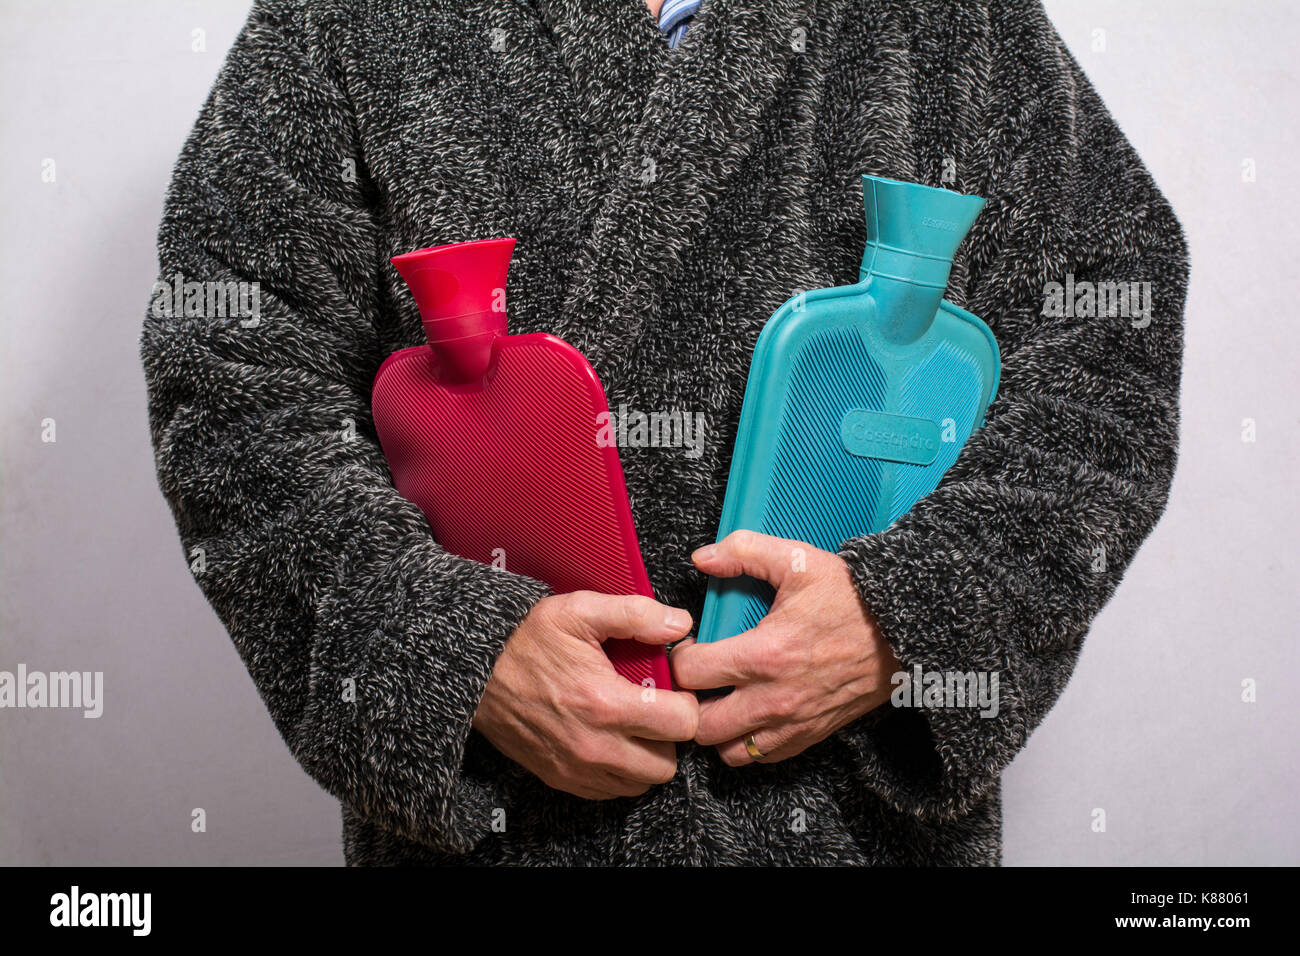 Man in a fluffy dressing gown holding two hot water bottles - Stock Image